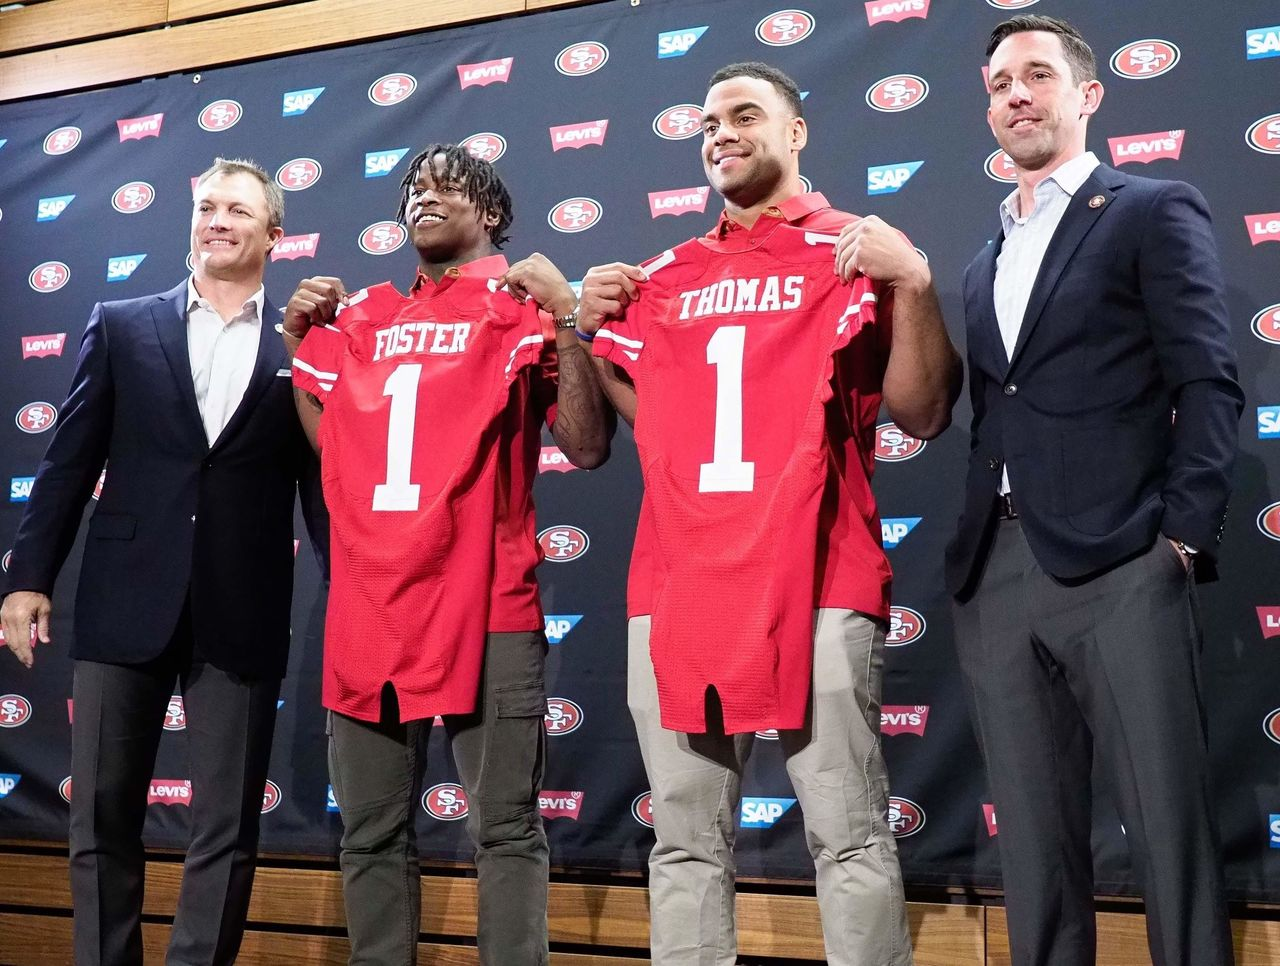 Cropped 2017 04 28t223322z 588146662 nocid rtrmadp 3 nfl san francisco 49ers press conference